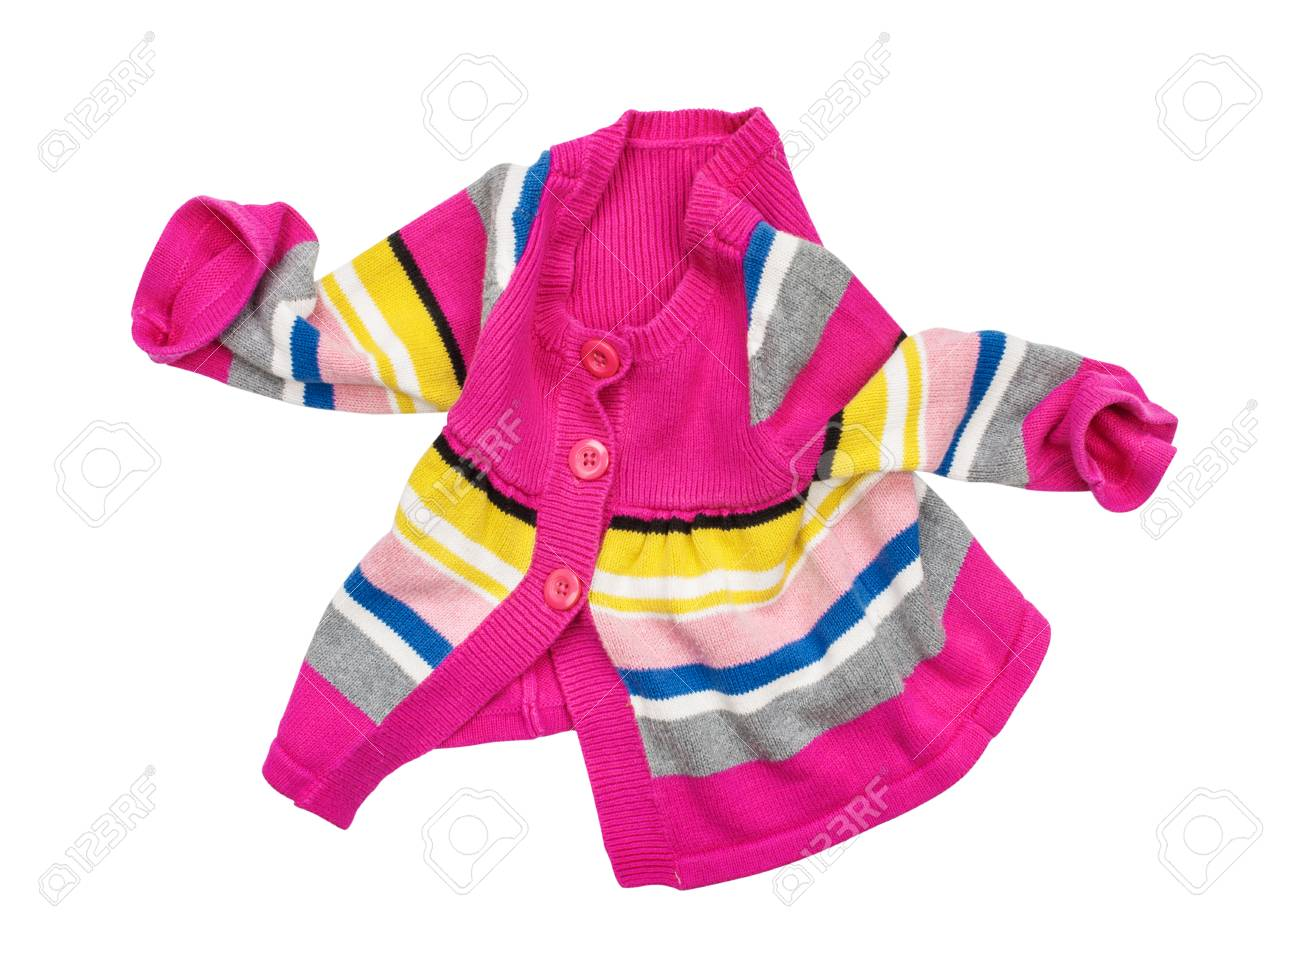 f502e2959ed3 Baby Red Jacket In Motion On A White Background Isolated Stock Photo ...